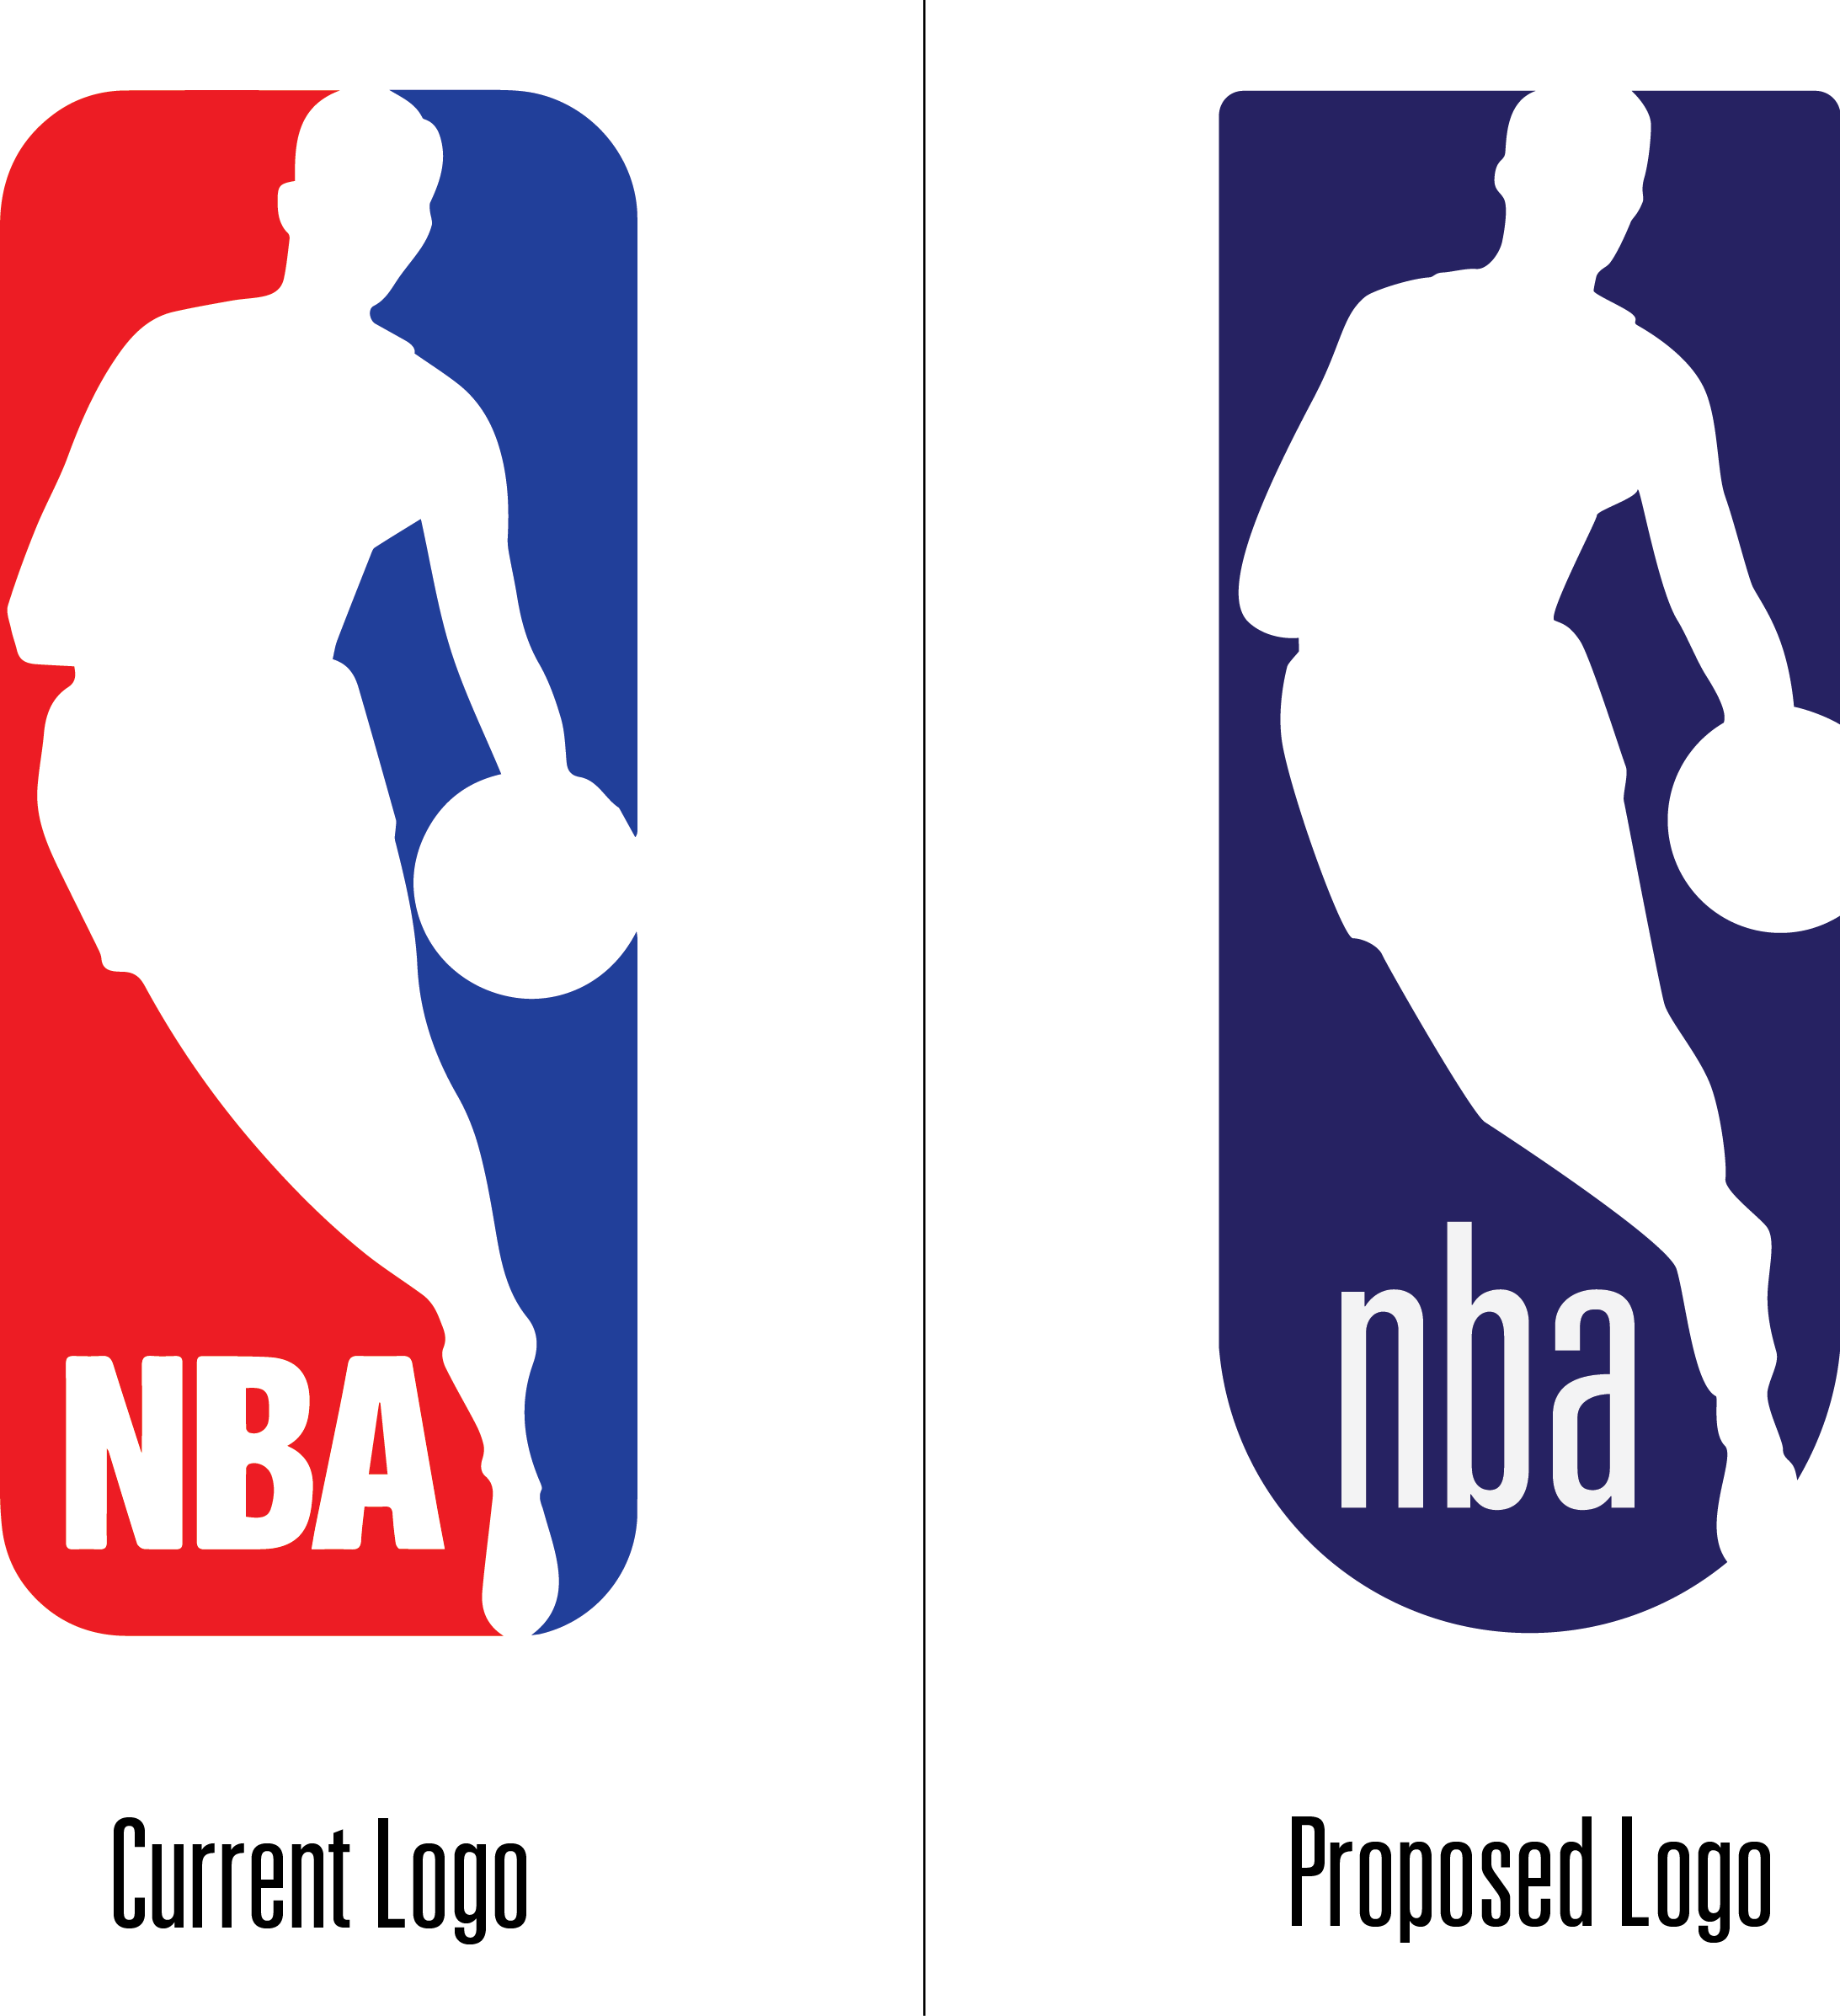 Nba logo png. Compairison baronvongoodness in redesign